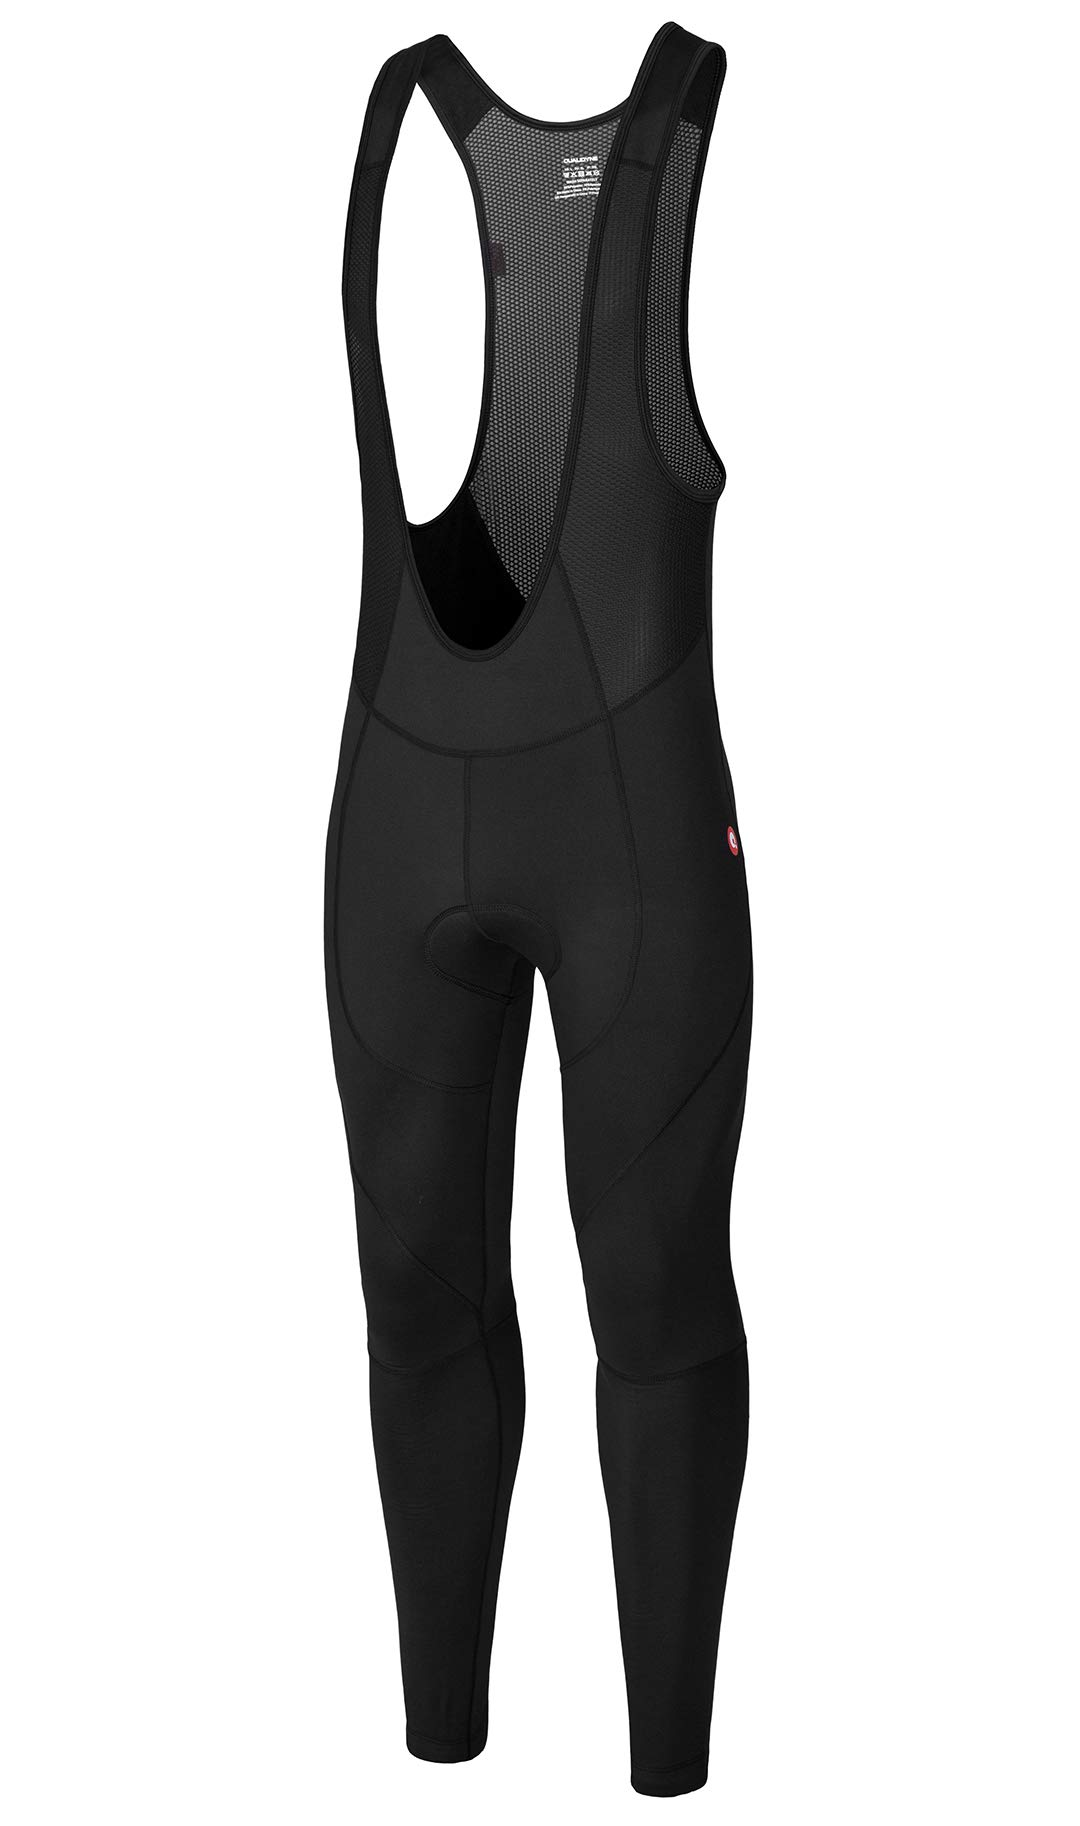 qualidyne Men's Cycling Bike Bib Pants 3D Padded Bike Tights Compression Bicycle Pants, Excellent Performance & Better Fit(Black,M) by qualidyne